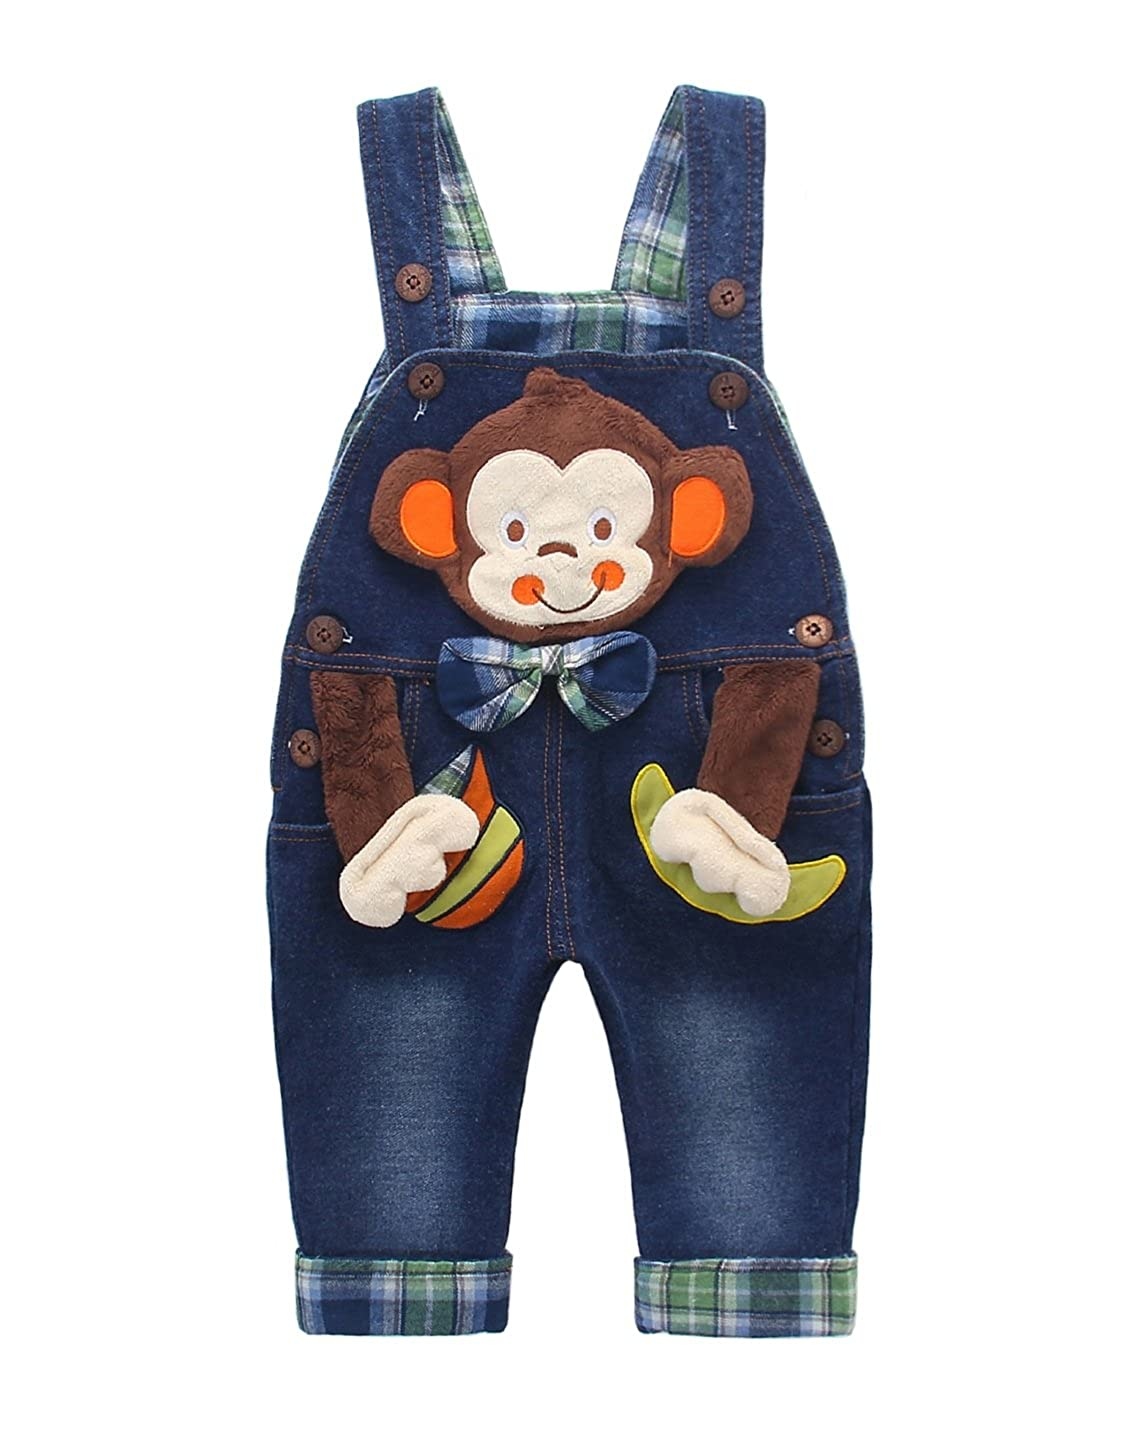 DEBAIJIA Kids Baby Denim Dungarees Boys Girls Toddler Bib Overall Jeans with Suspenders Monkey in Bowtie